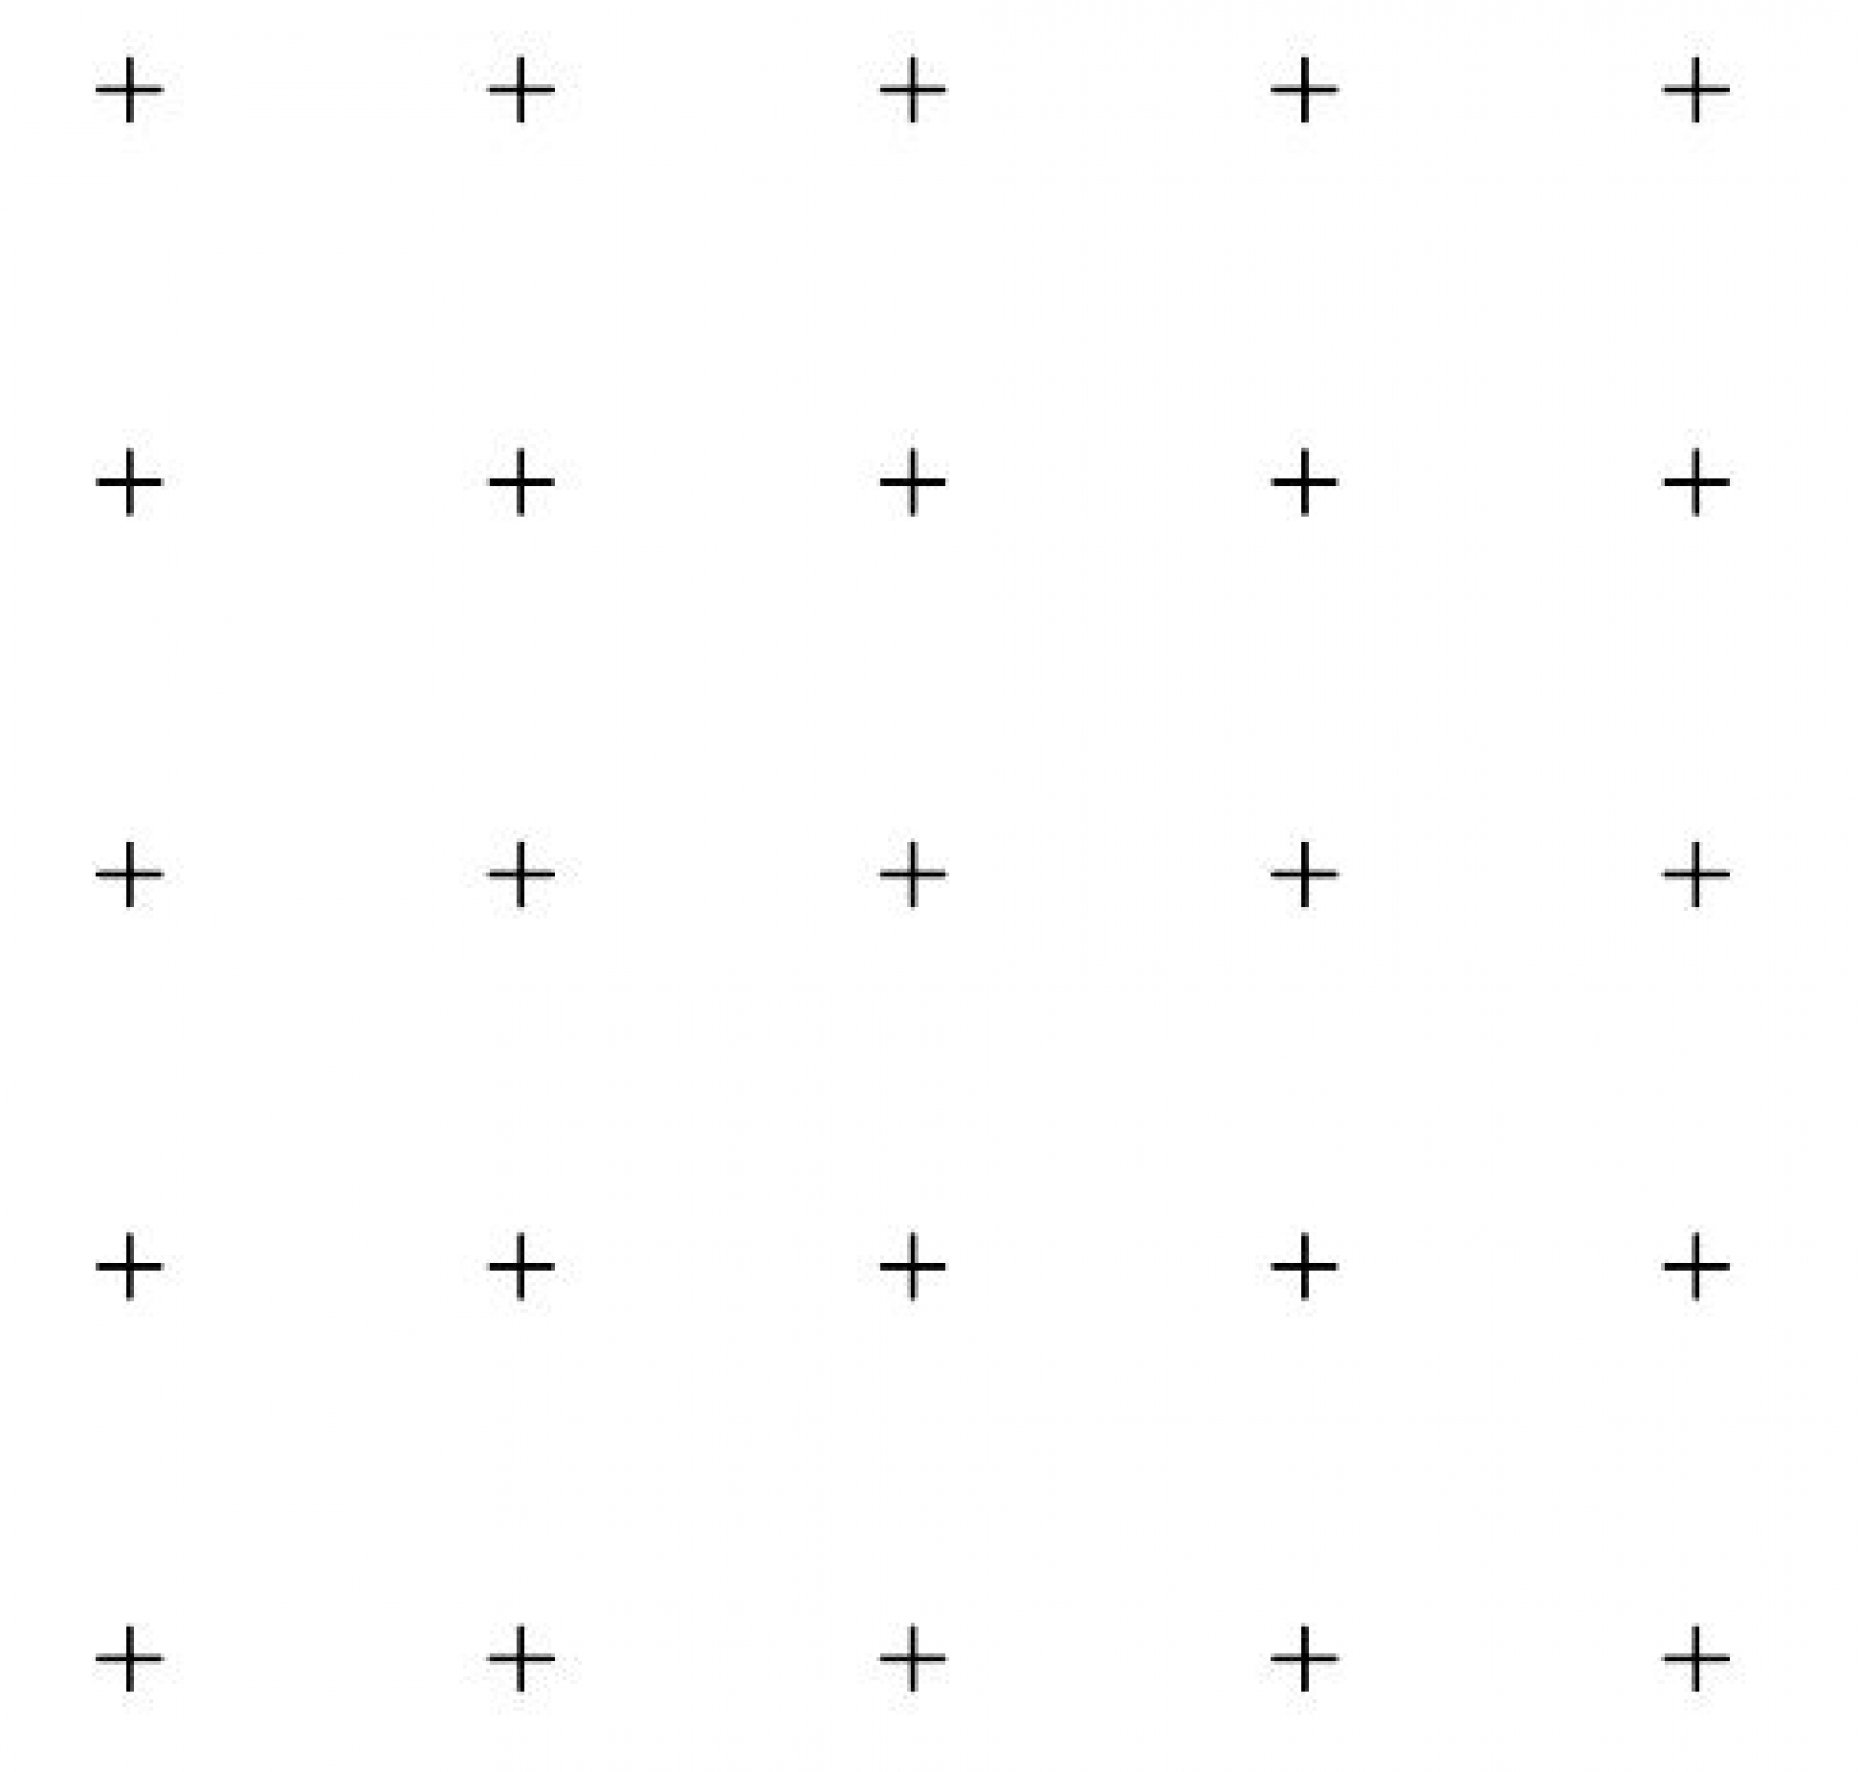 G55 ASTM E562 25 Point Square Grid Pattern